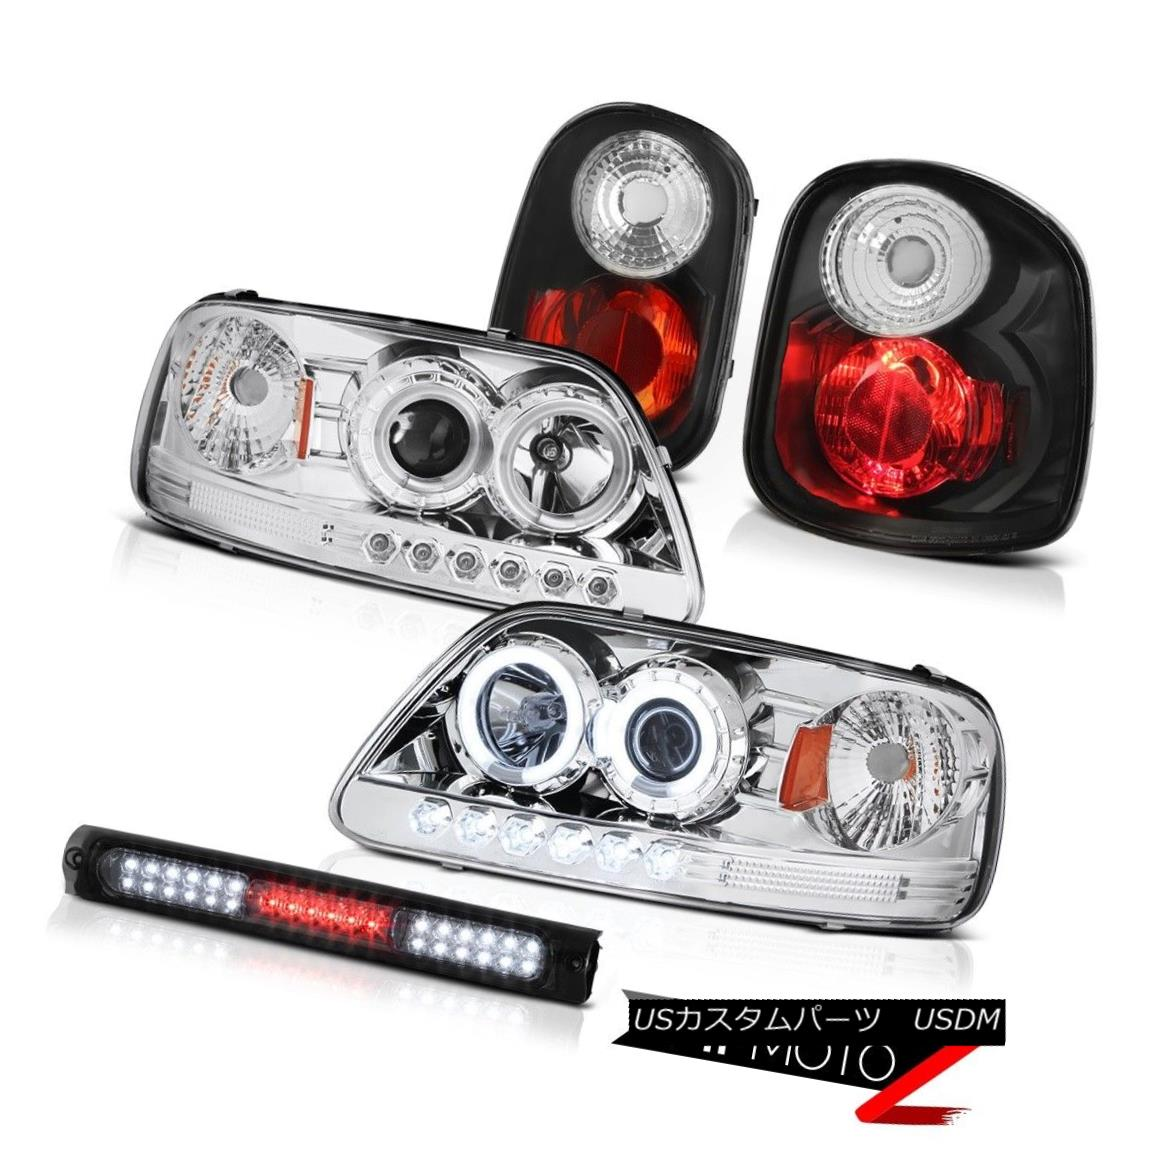 ヘッドライト CCFL Tech Pkg Headlights Rear Black Brake Lamps LED 1997-2000 F150 Flareside SVT CCFL Tech PkgヘッドライトリアブラックブレーキランプLED 1997-2000 F150 Flareside SVT